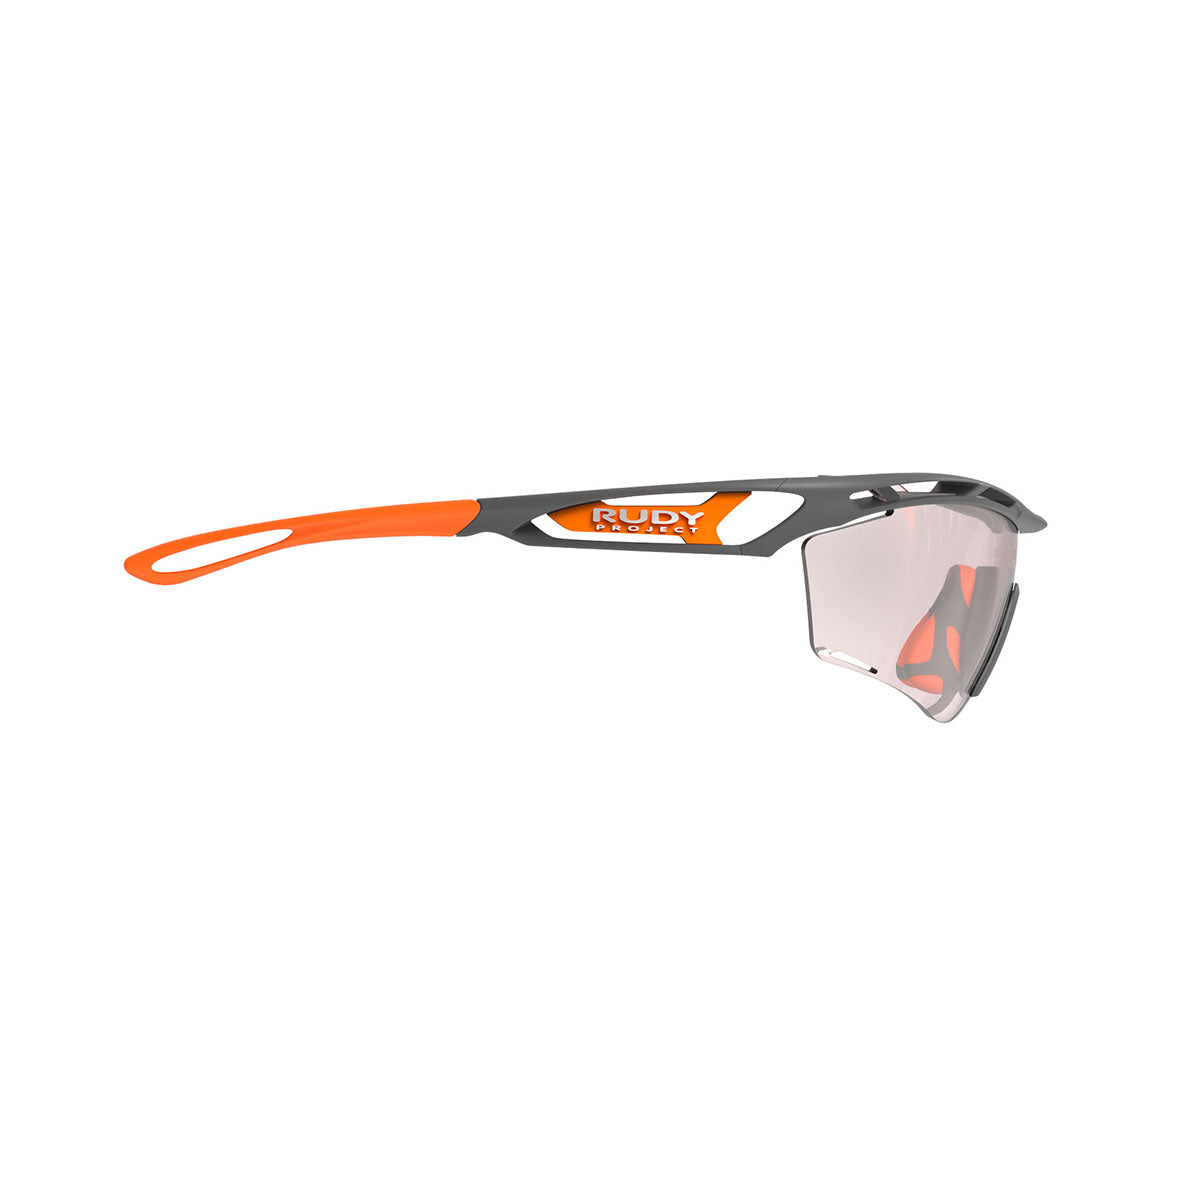 Rudy Project - Tralyx Golf - frame color: Pyombo Matte - lens color: IMPACTX-2 PHOTOCHROMIC PHOTOCHROMIC CLEAR TO RED LENSES - photo angle: Side Variant Hover Image